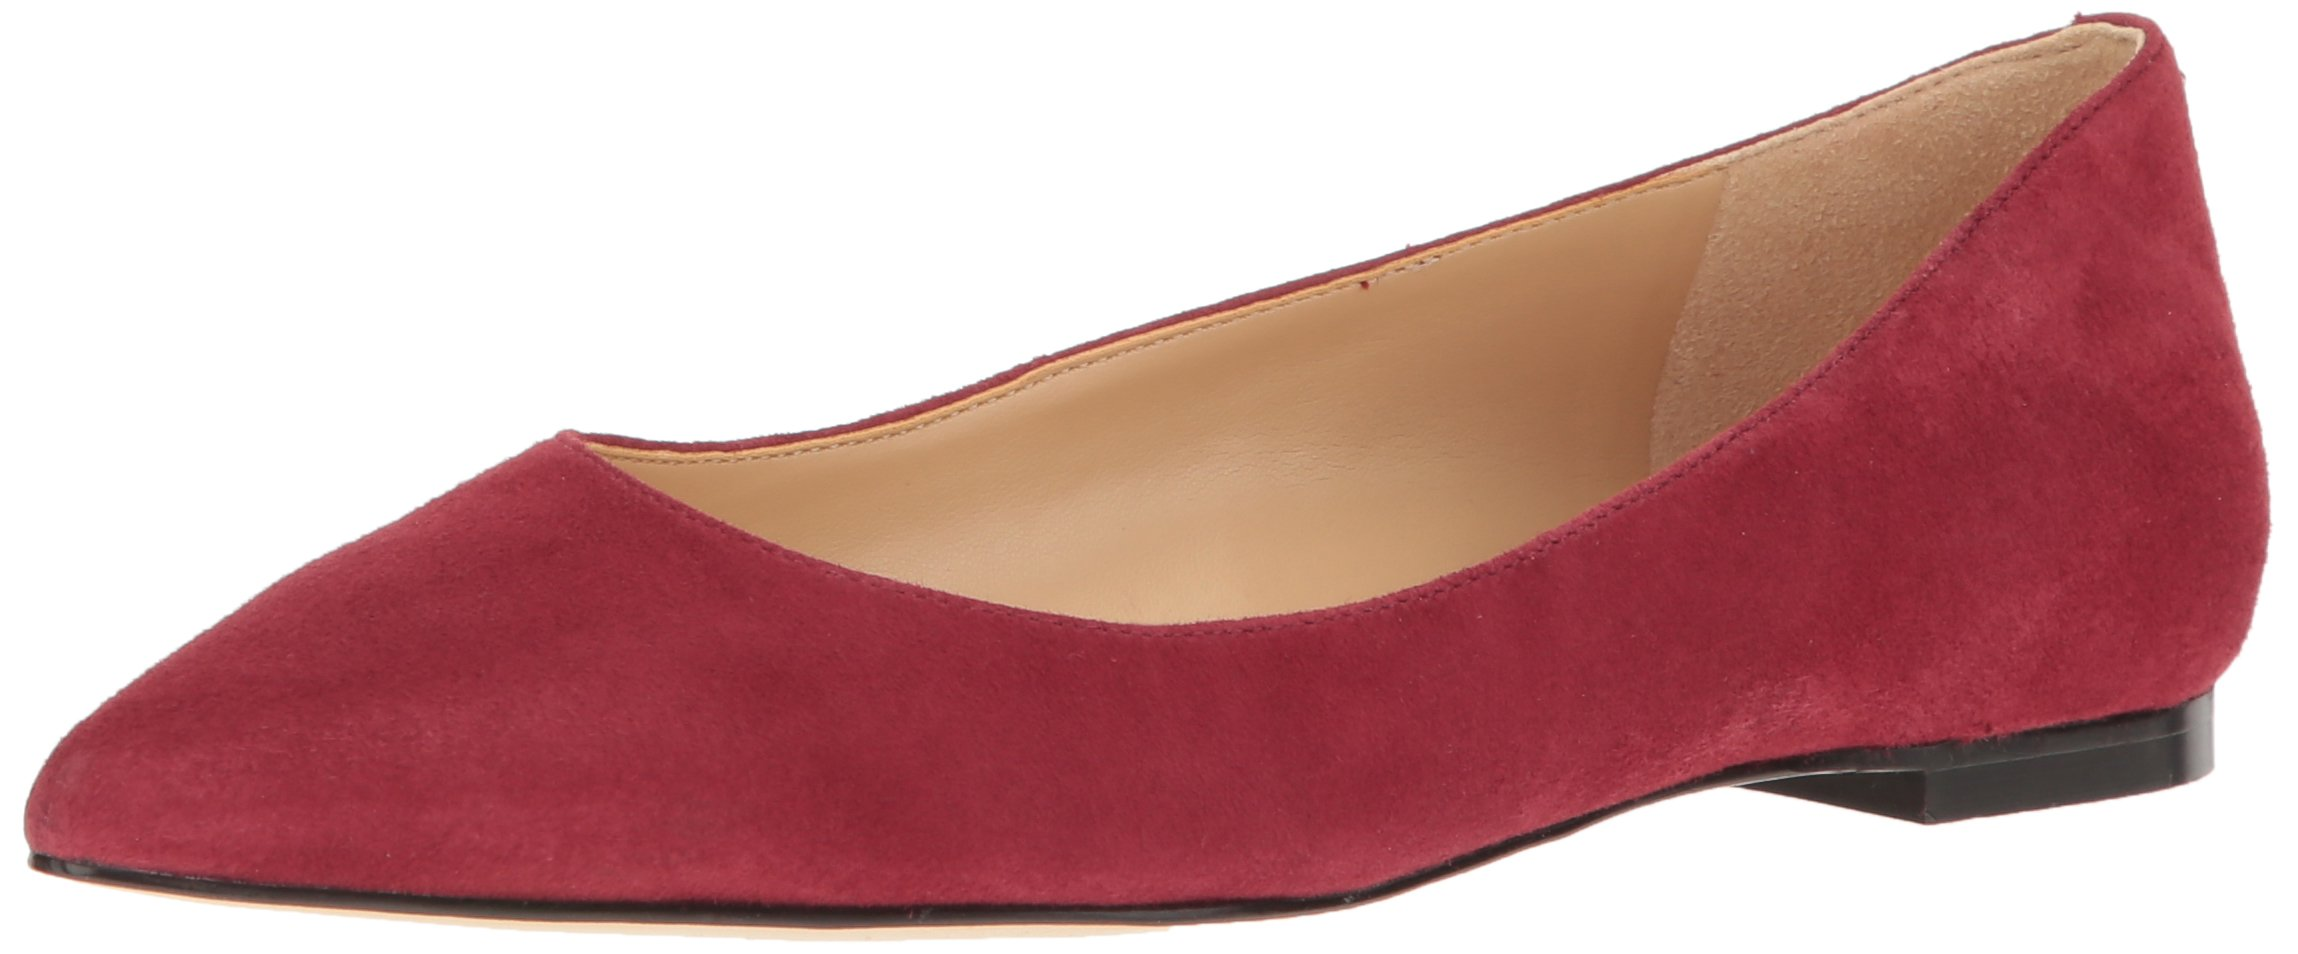 Sam Edelman Women's Rae Pointed Toe Flat, Tango Red Suede, 9.5 M US